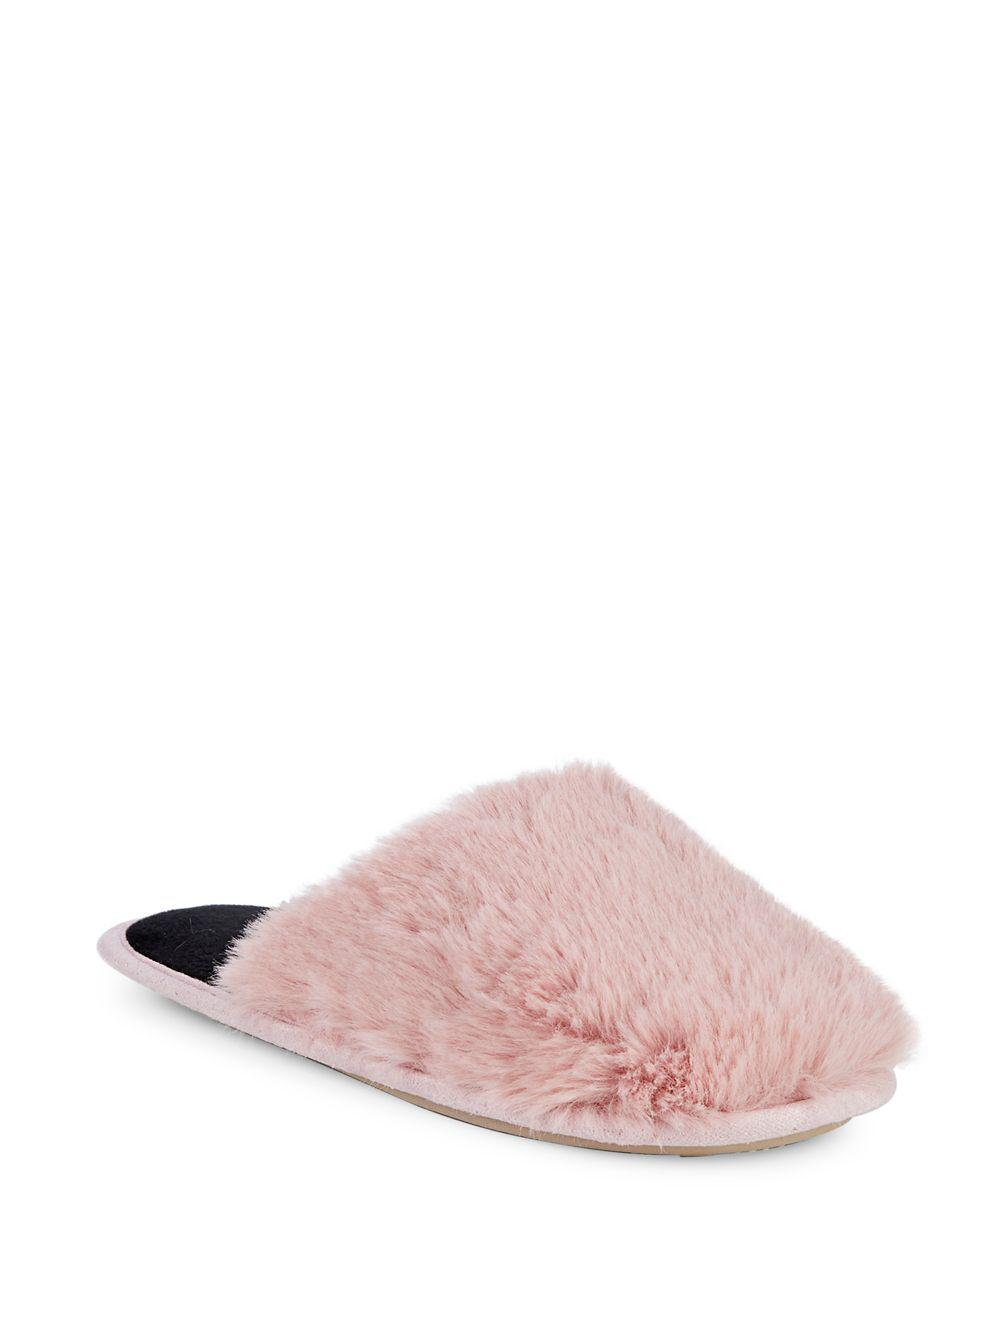 0f564af2d788 Kensie Classic Faux Fur Slippers in Pink - Lyst